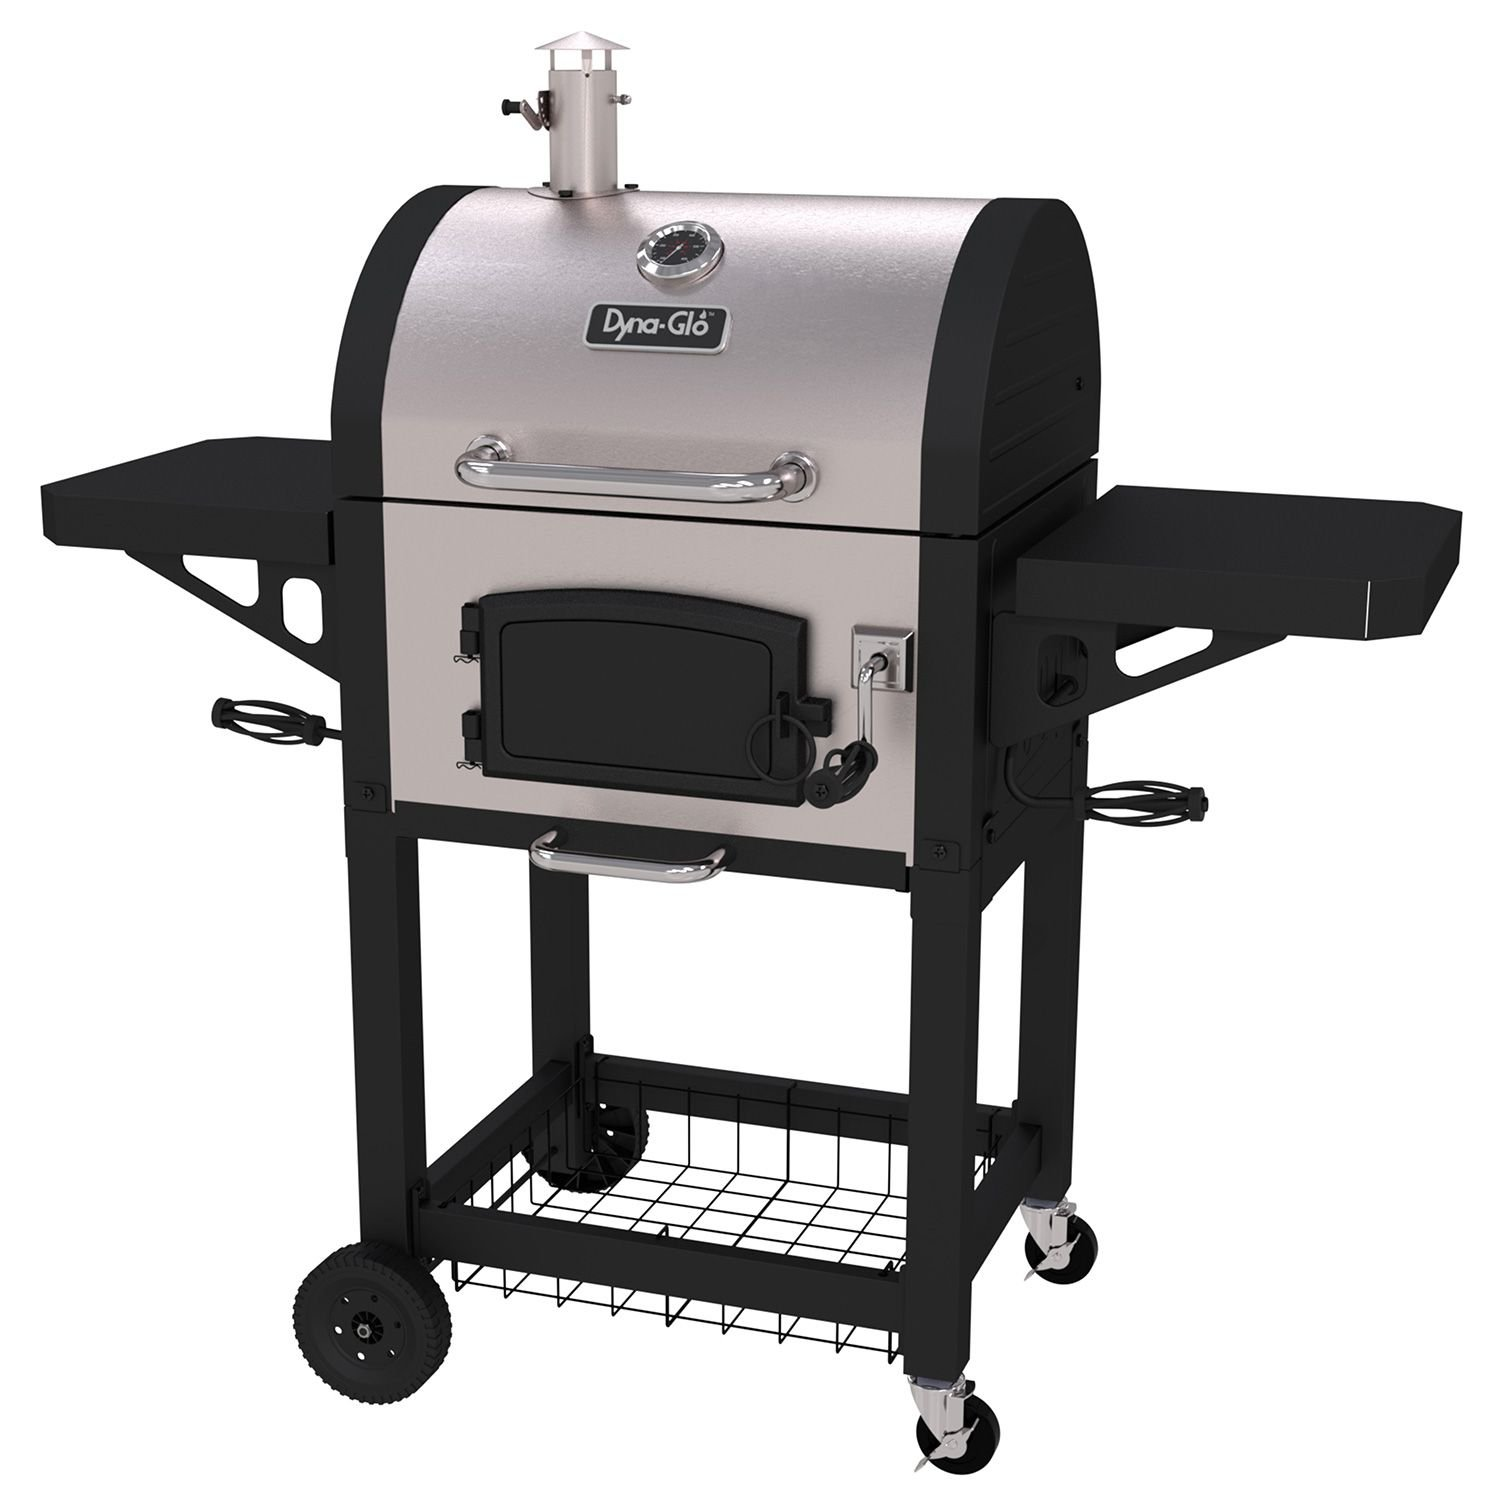 Dyna-Glo Heavy Duty Stainless Charcoal Grill - 568 sq. in.